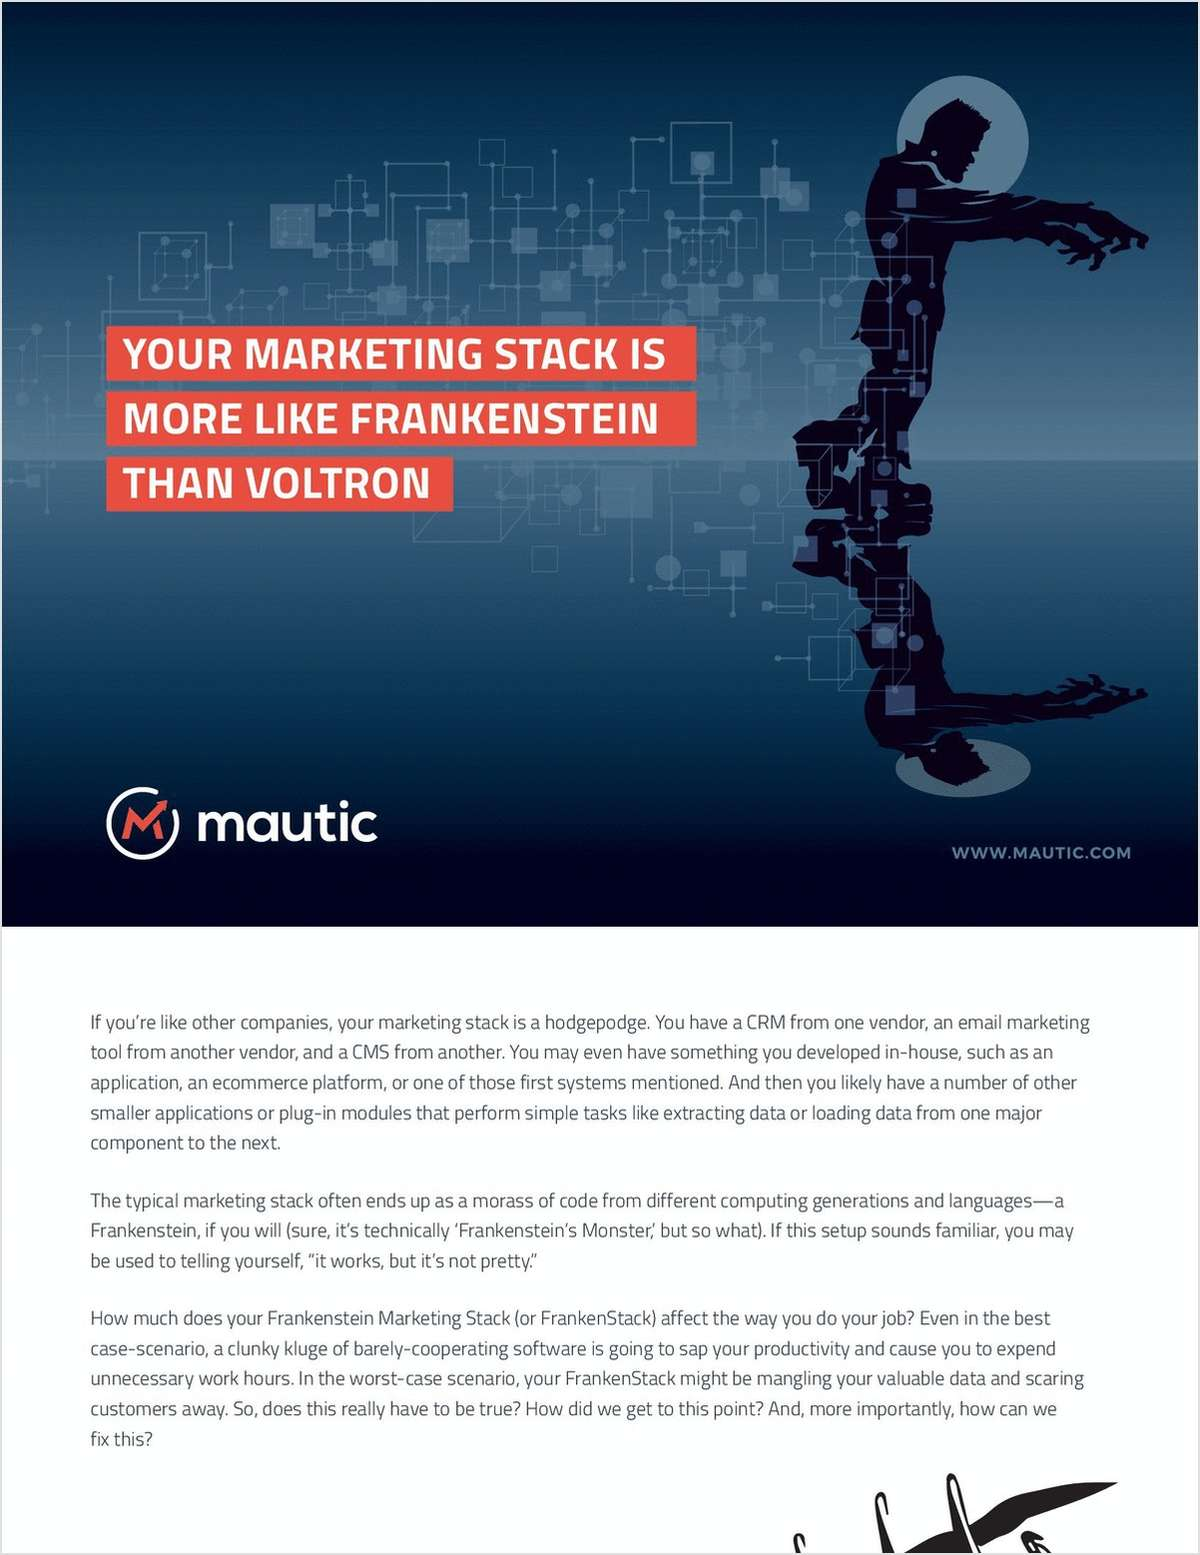 Your Marketing Stack Is More Like Frankenstein Than Voltron